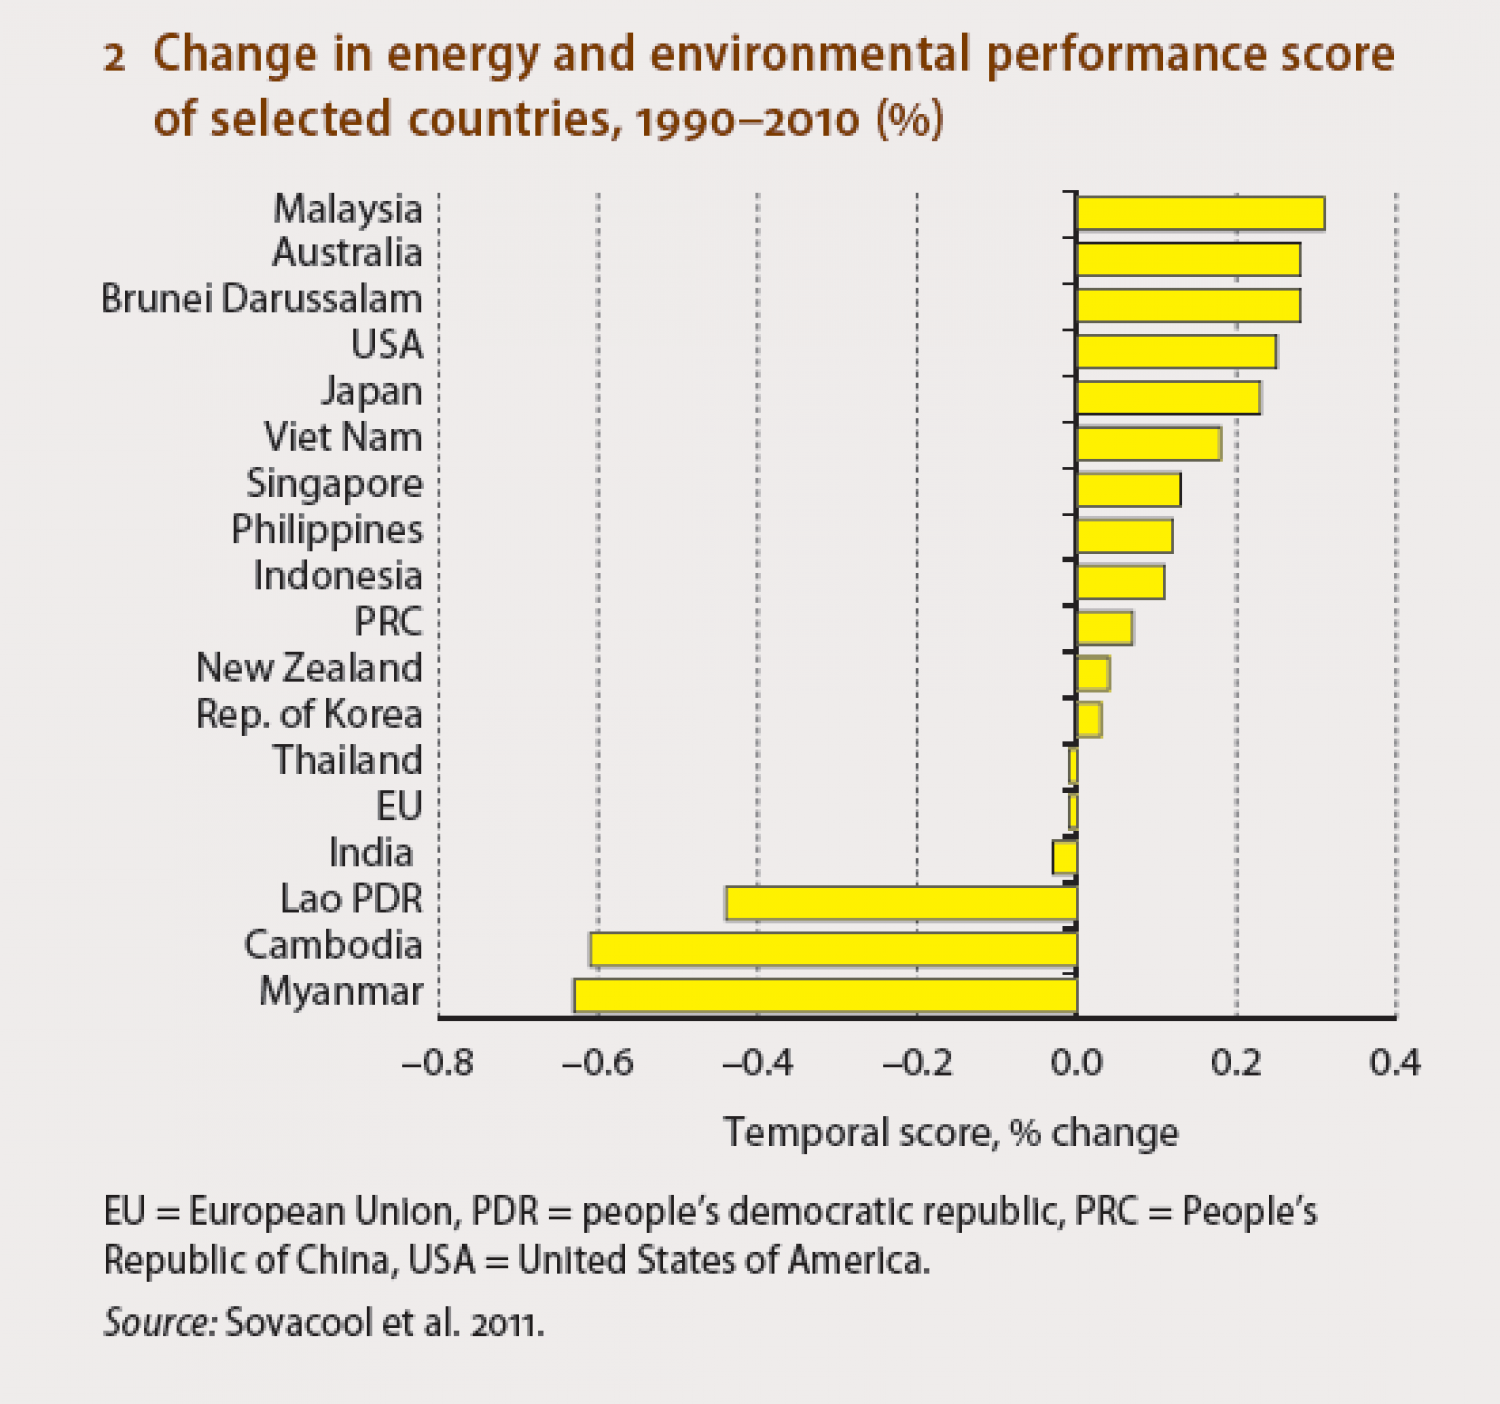 Change in energy and environmental performance score of selected countries, 1990-2010 (%) Infographic